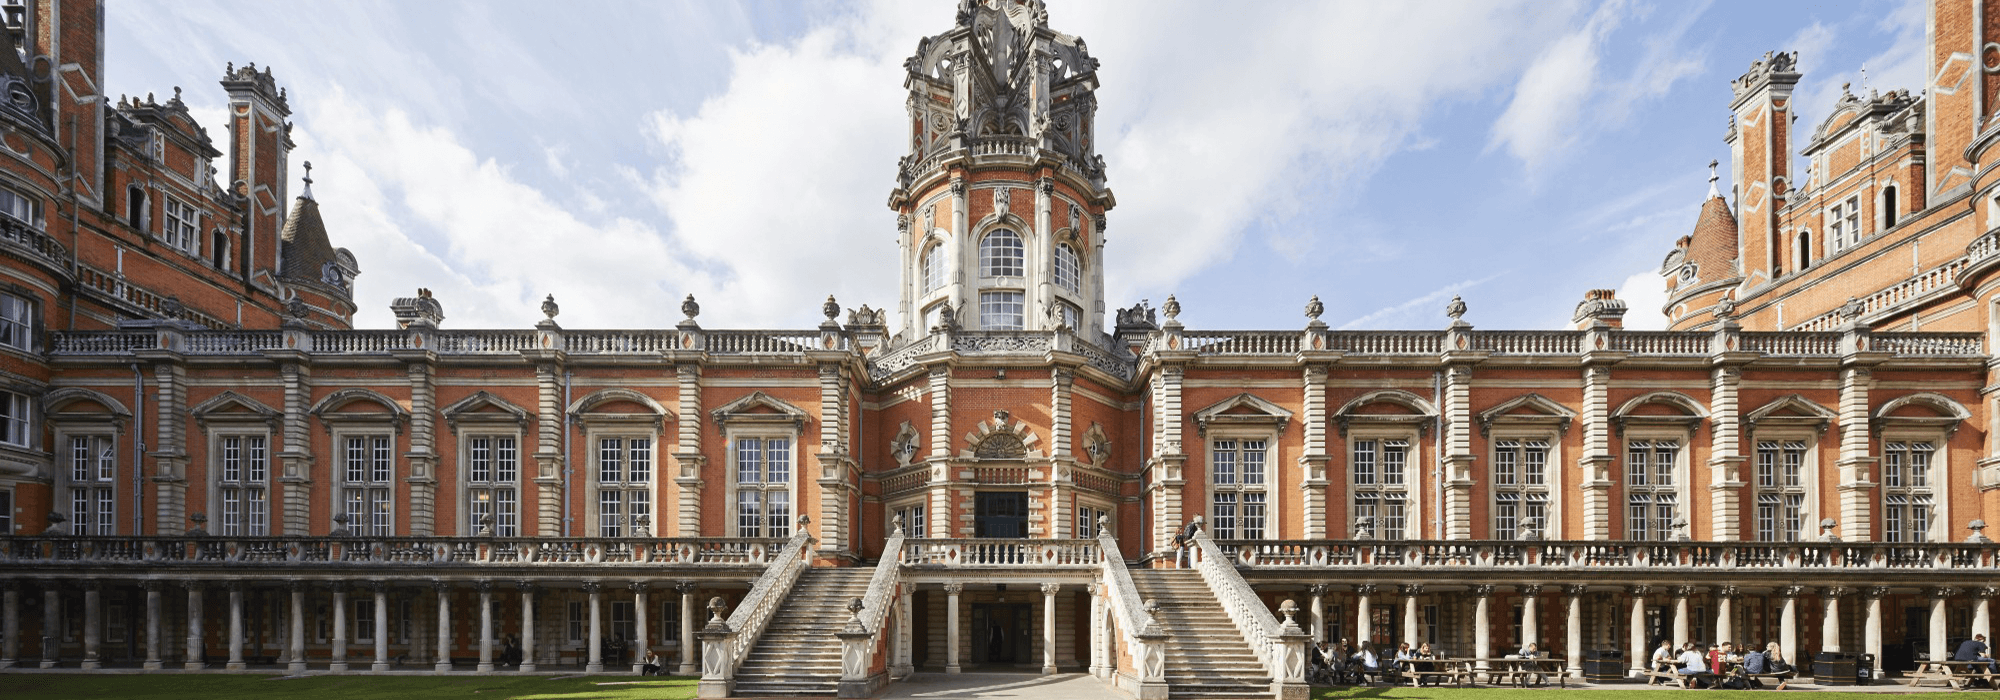 Royal Holloway University of London - IEC Abroad UK University Partner